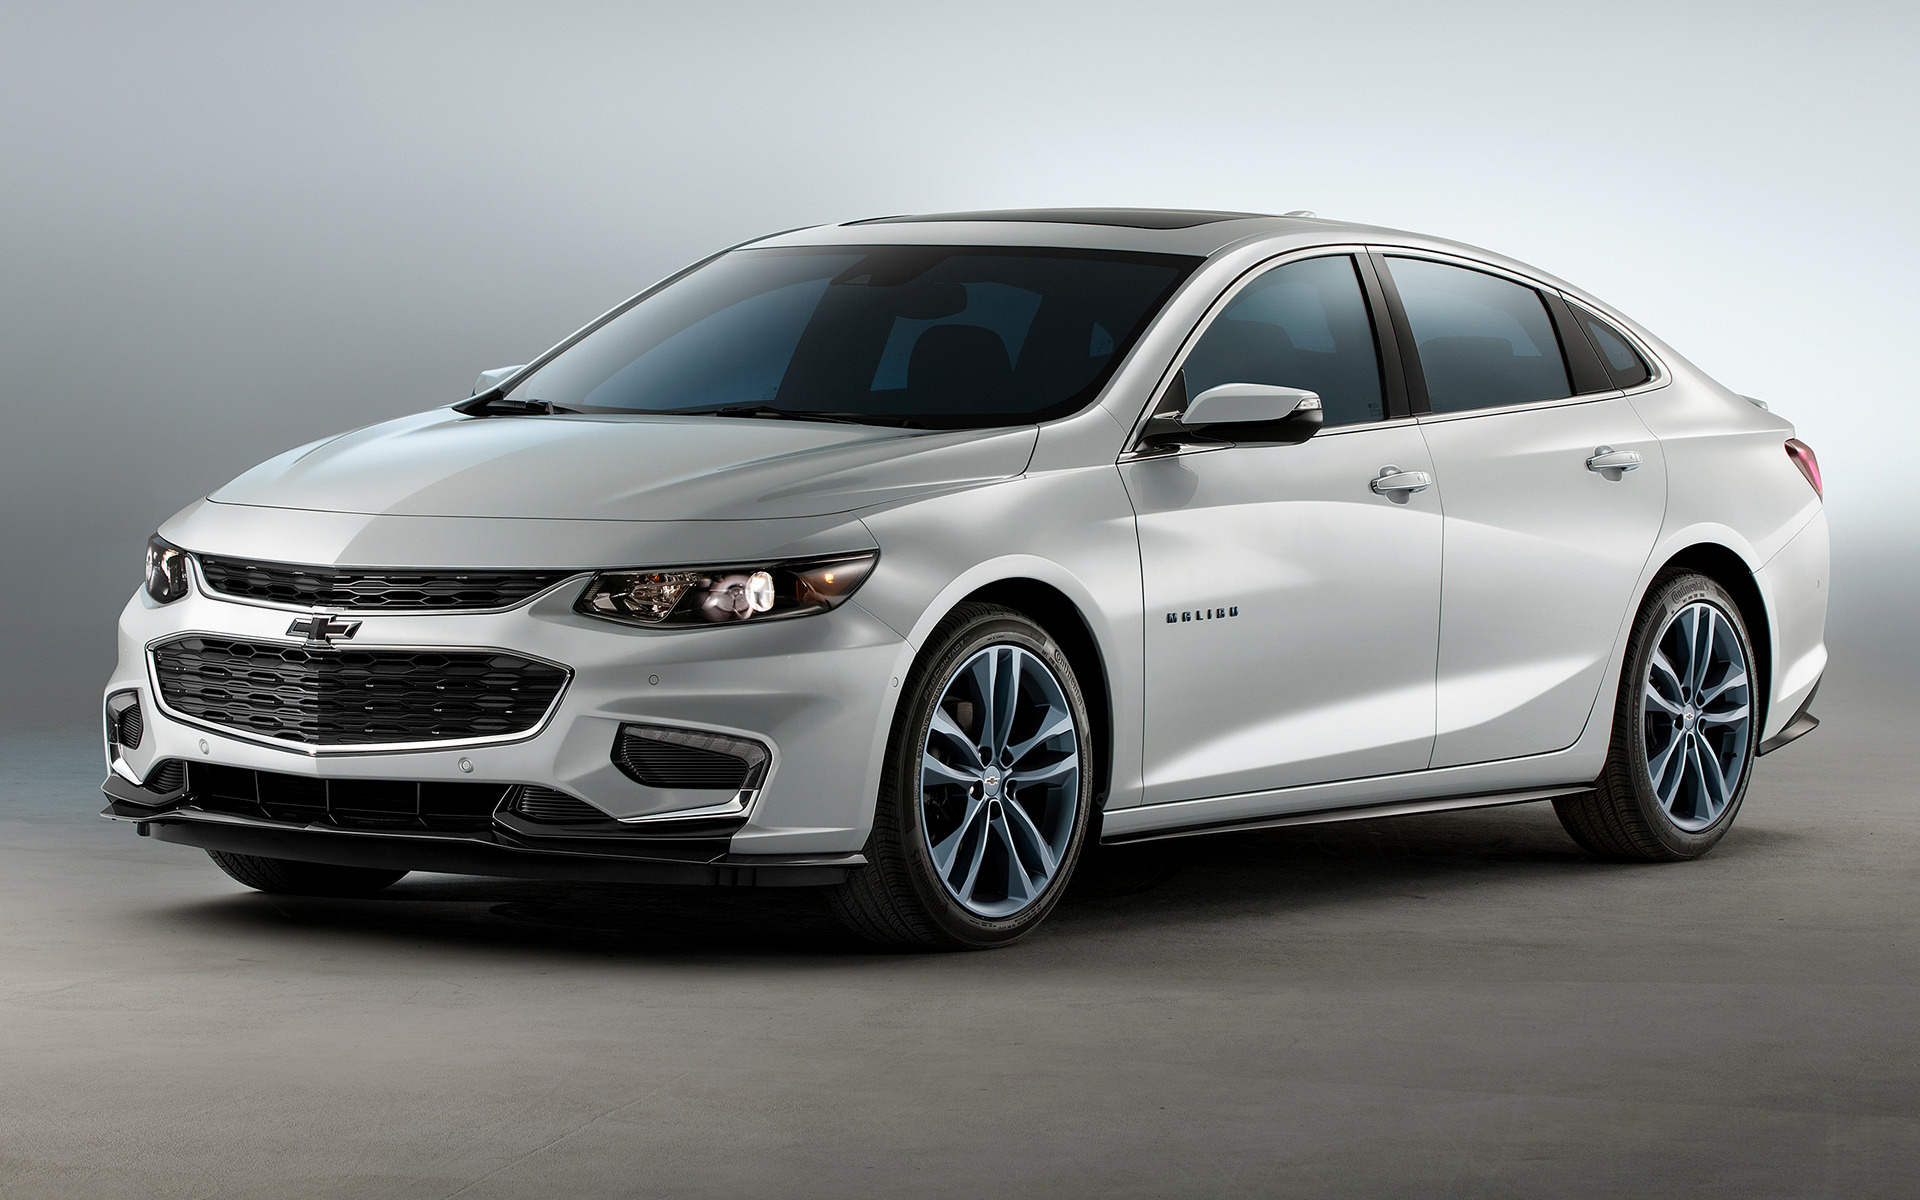 2016 Chevrolet Malibu Blue Line Concept - Wallpapers and ...